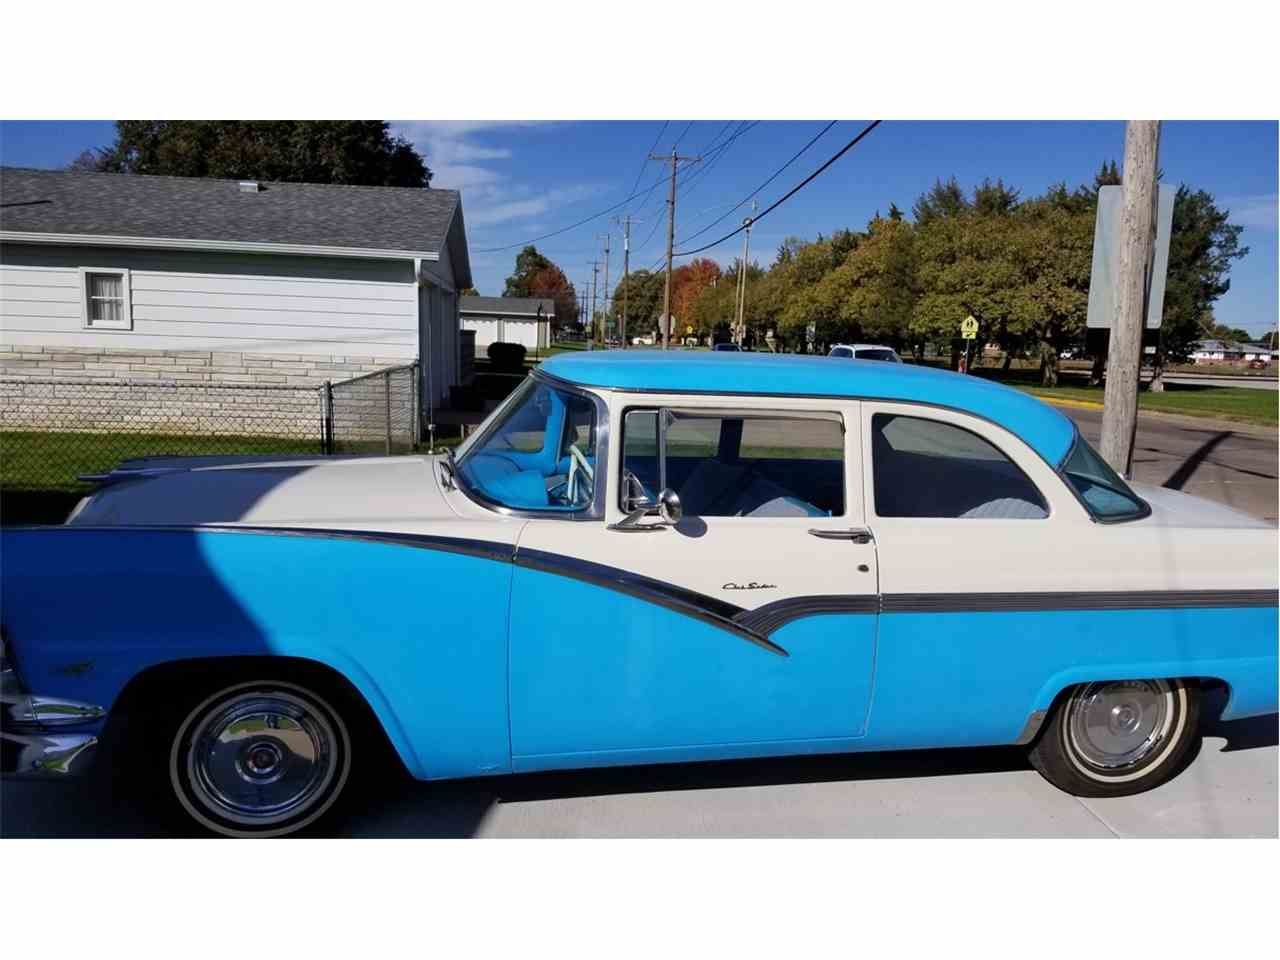 Large Picture of Classic '56 Ford Fairlane located in Hastings Nebraska - $25,000.00 - M5US